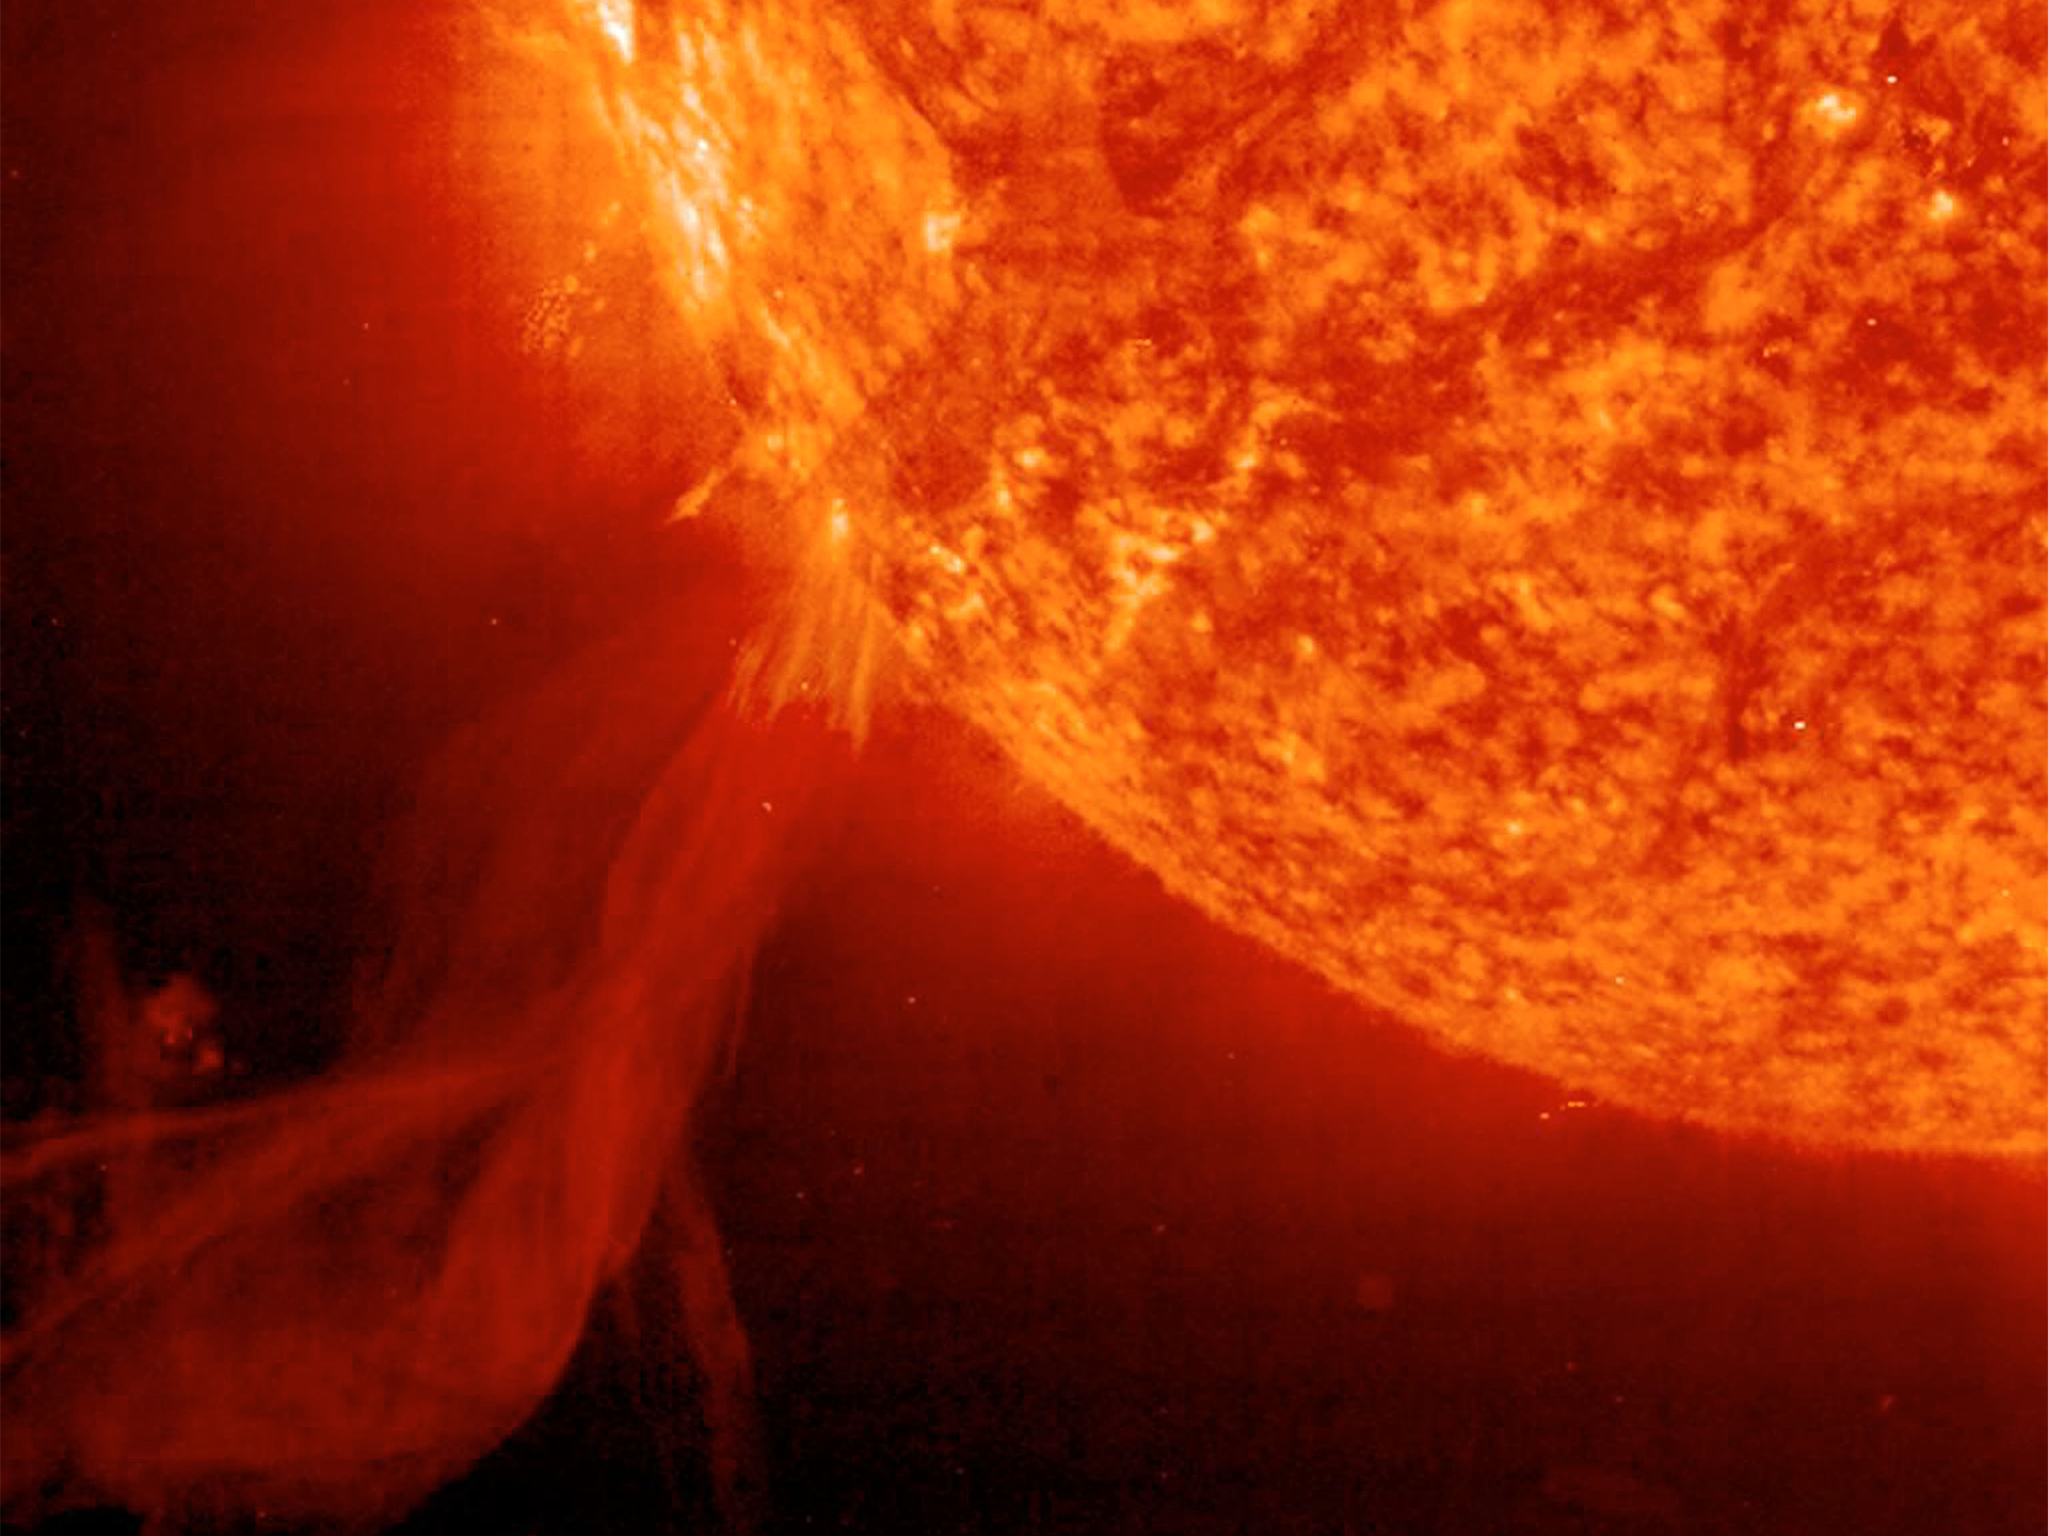 Image of article 'The Sun emitted its biggest solar flare in years'